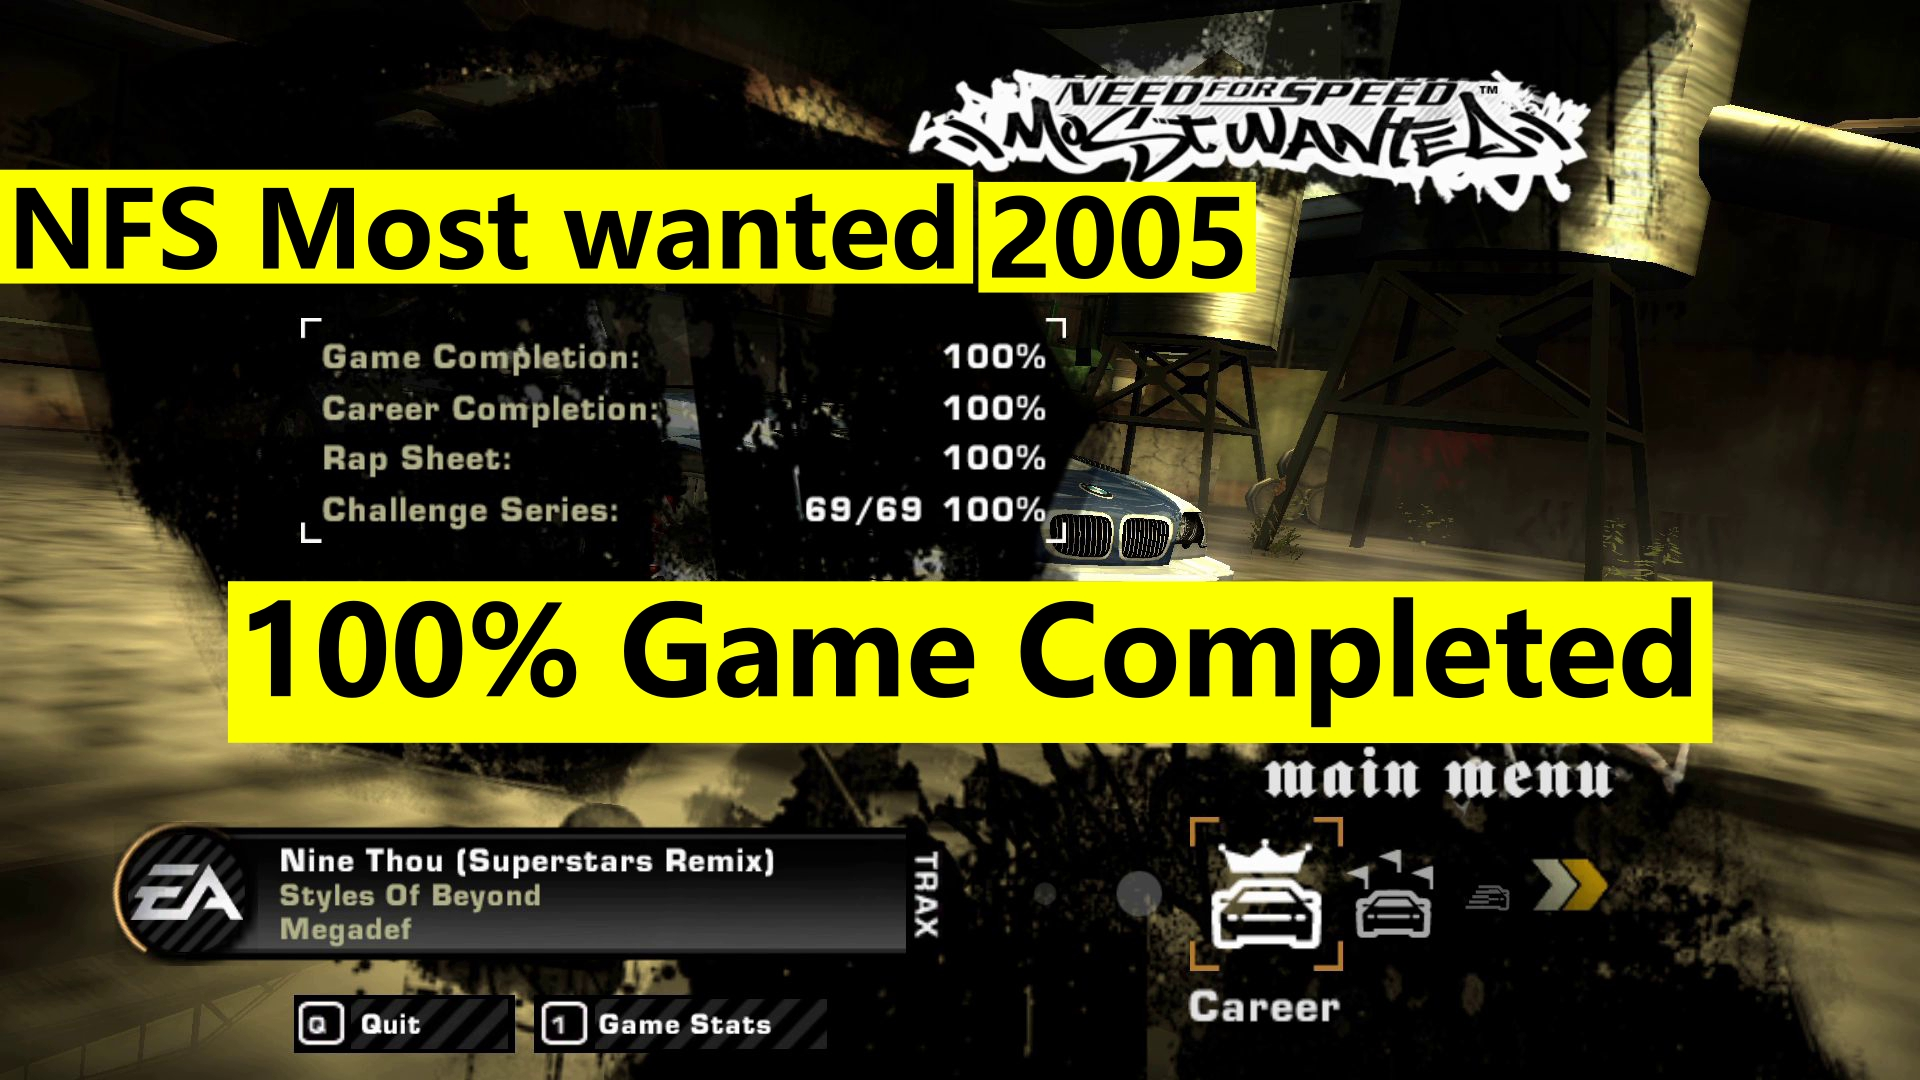 NFS Most Wanted 2005 PC – 100% Savegame